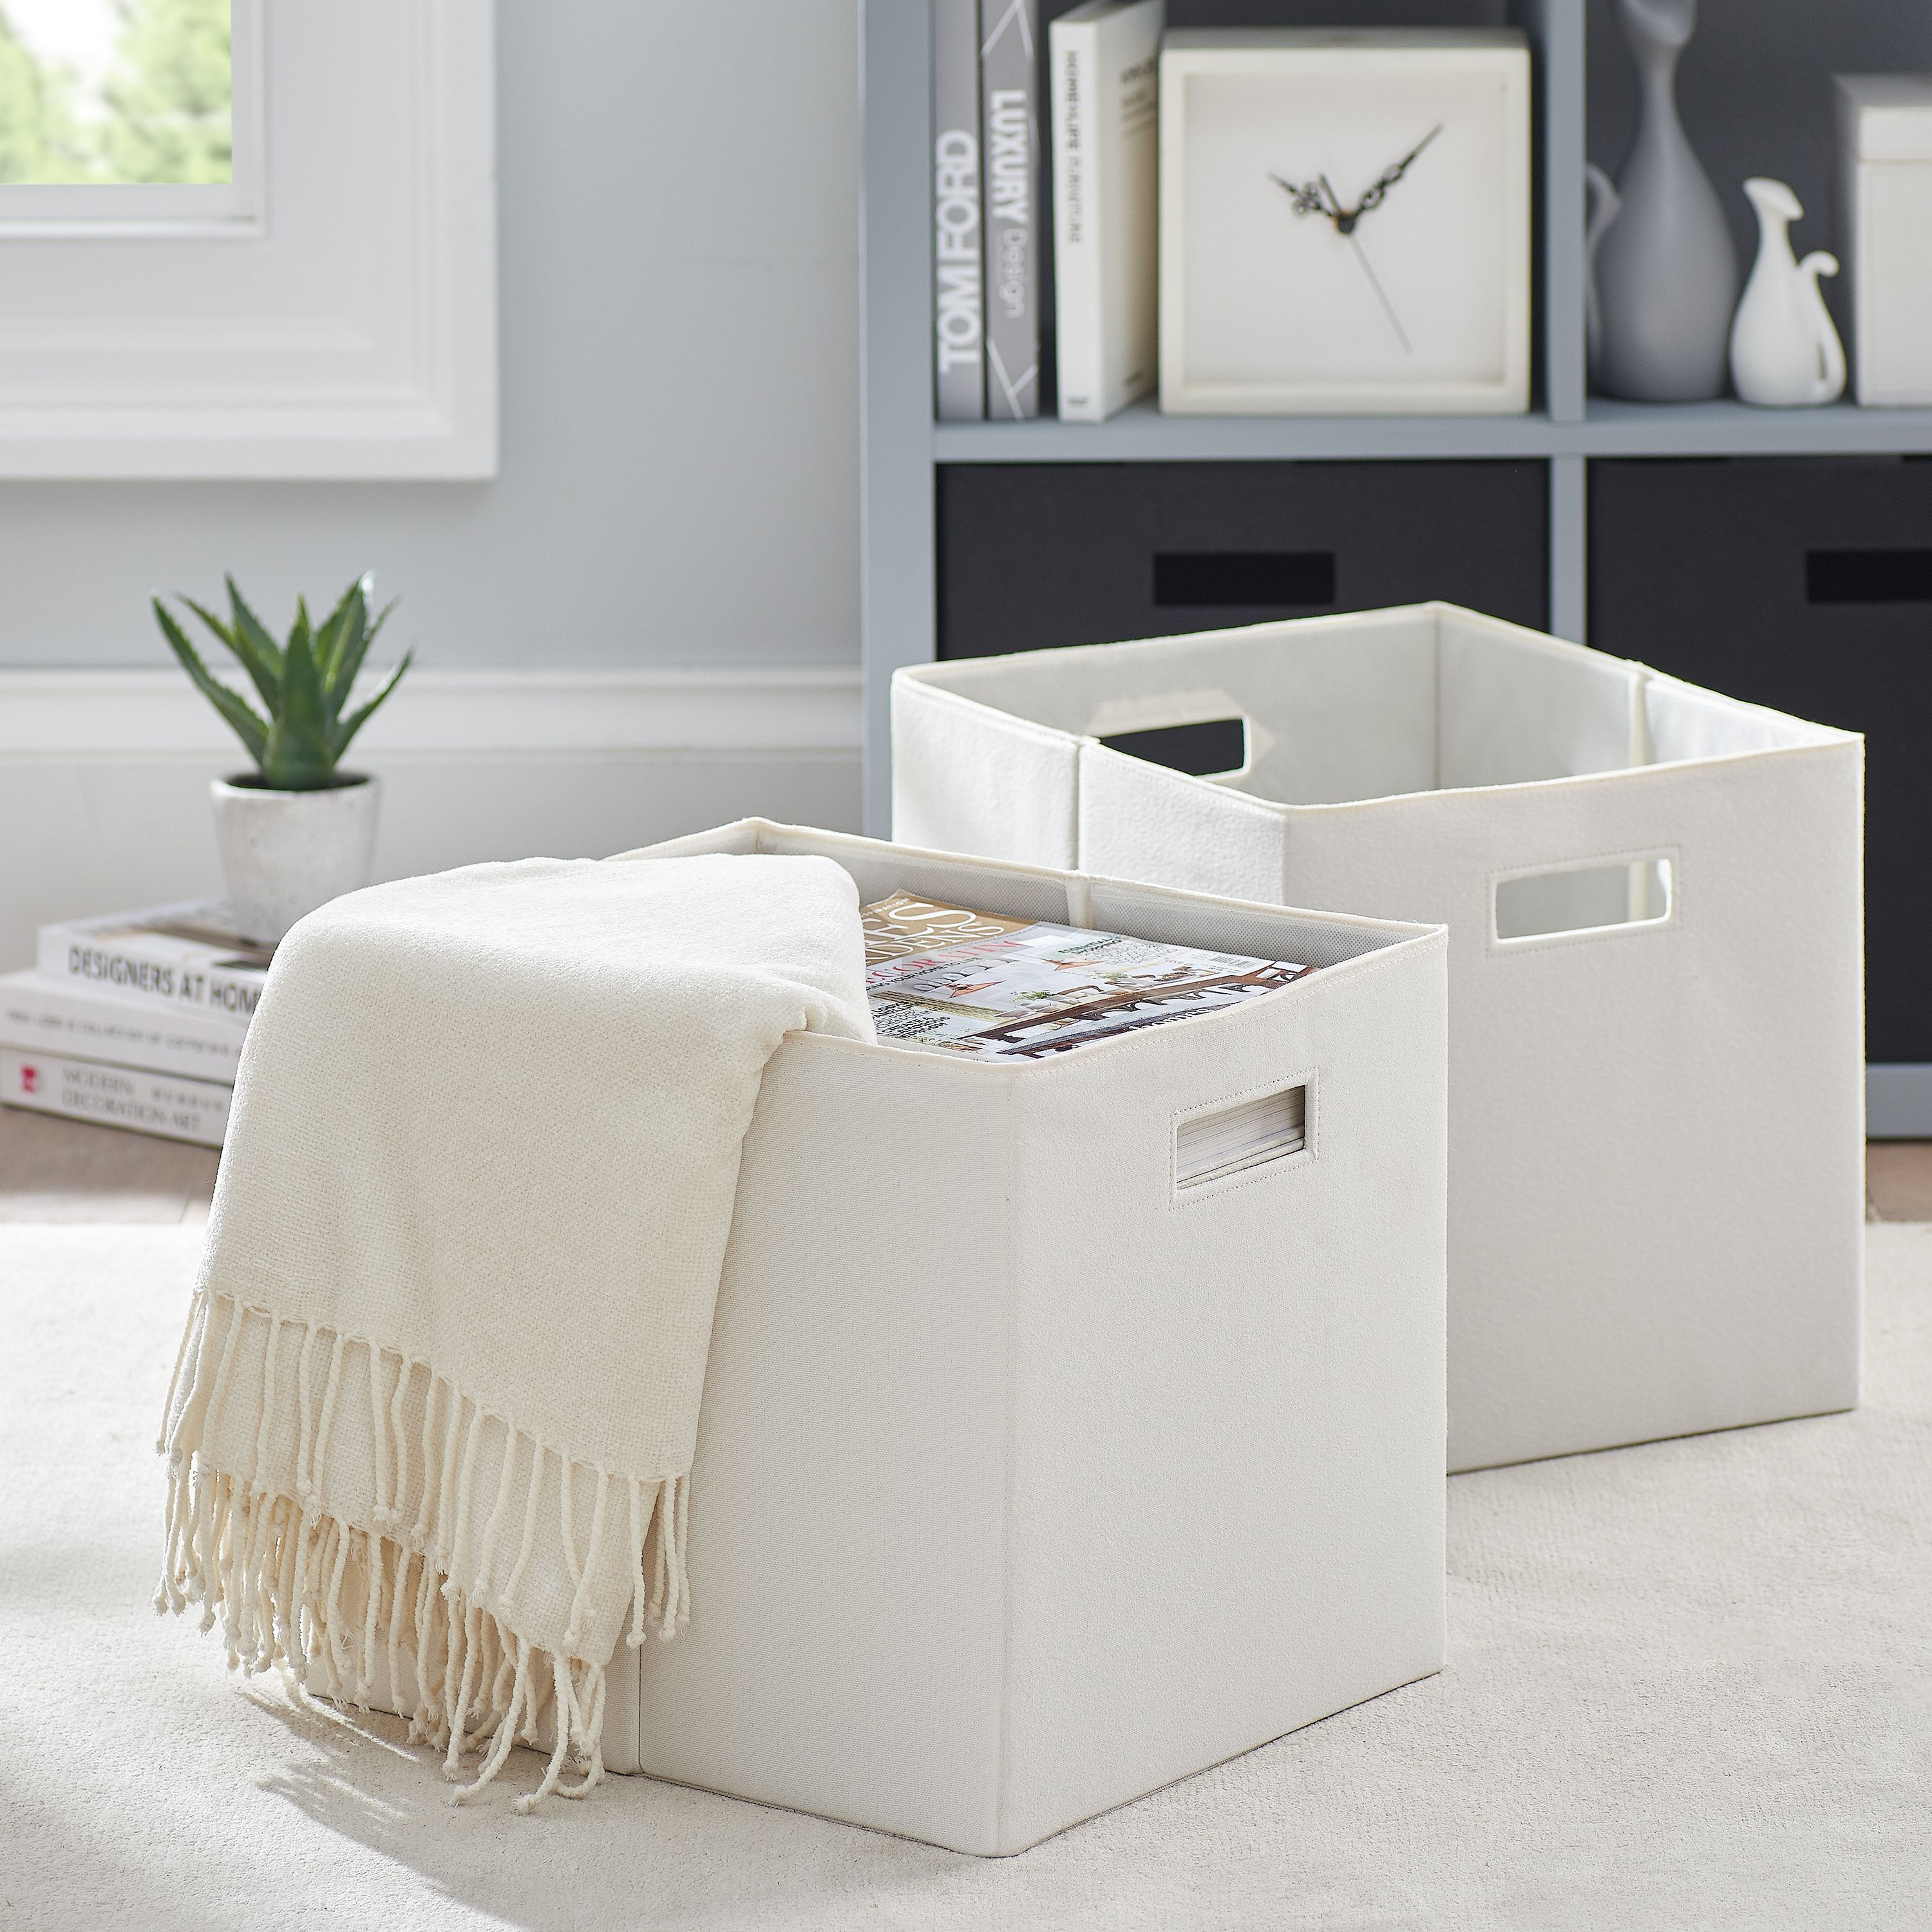 1845cff3f4291bc5f9c9dfdee3c33171 - Better Homes And Gardens Fabric Storage Bin Gray